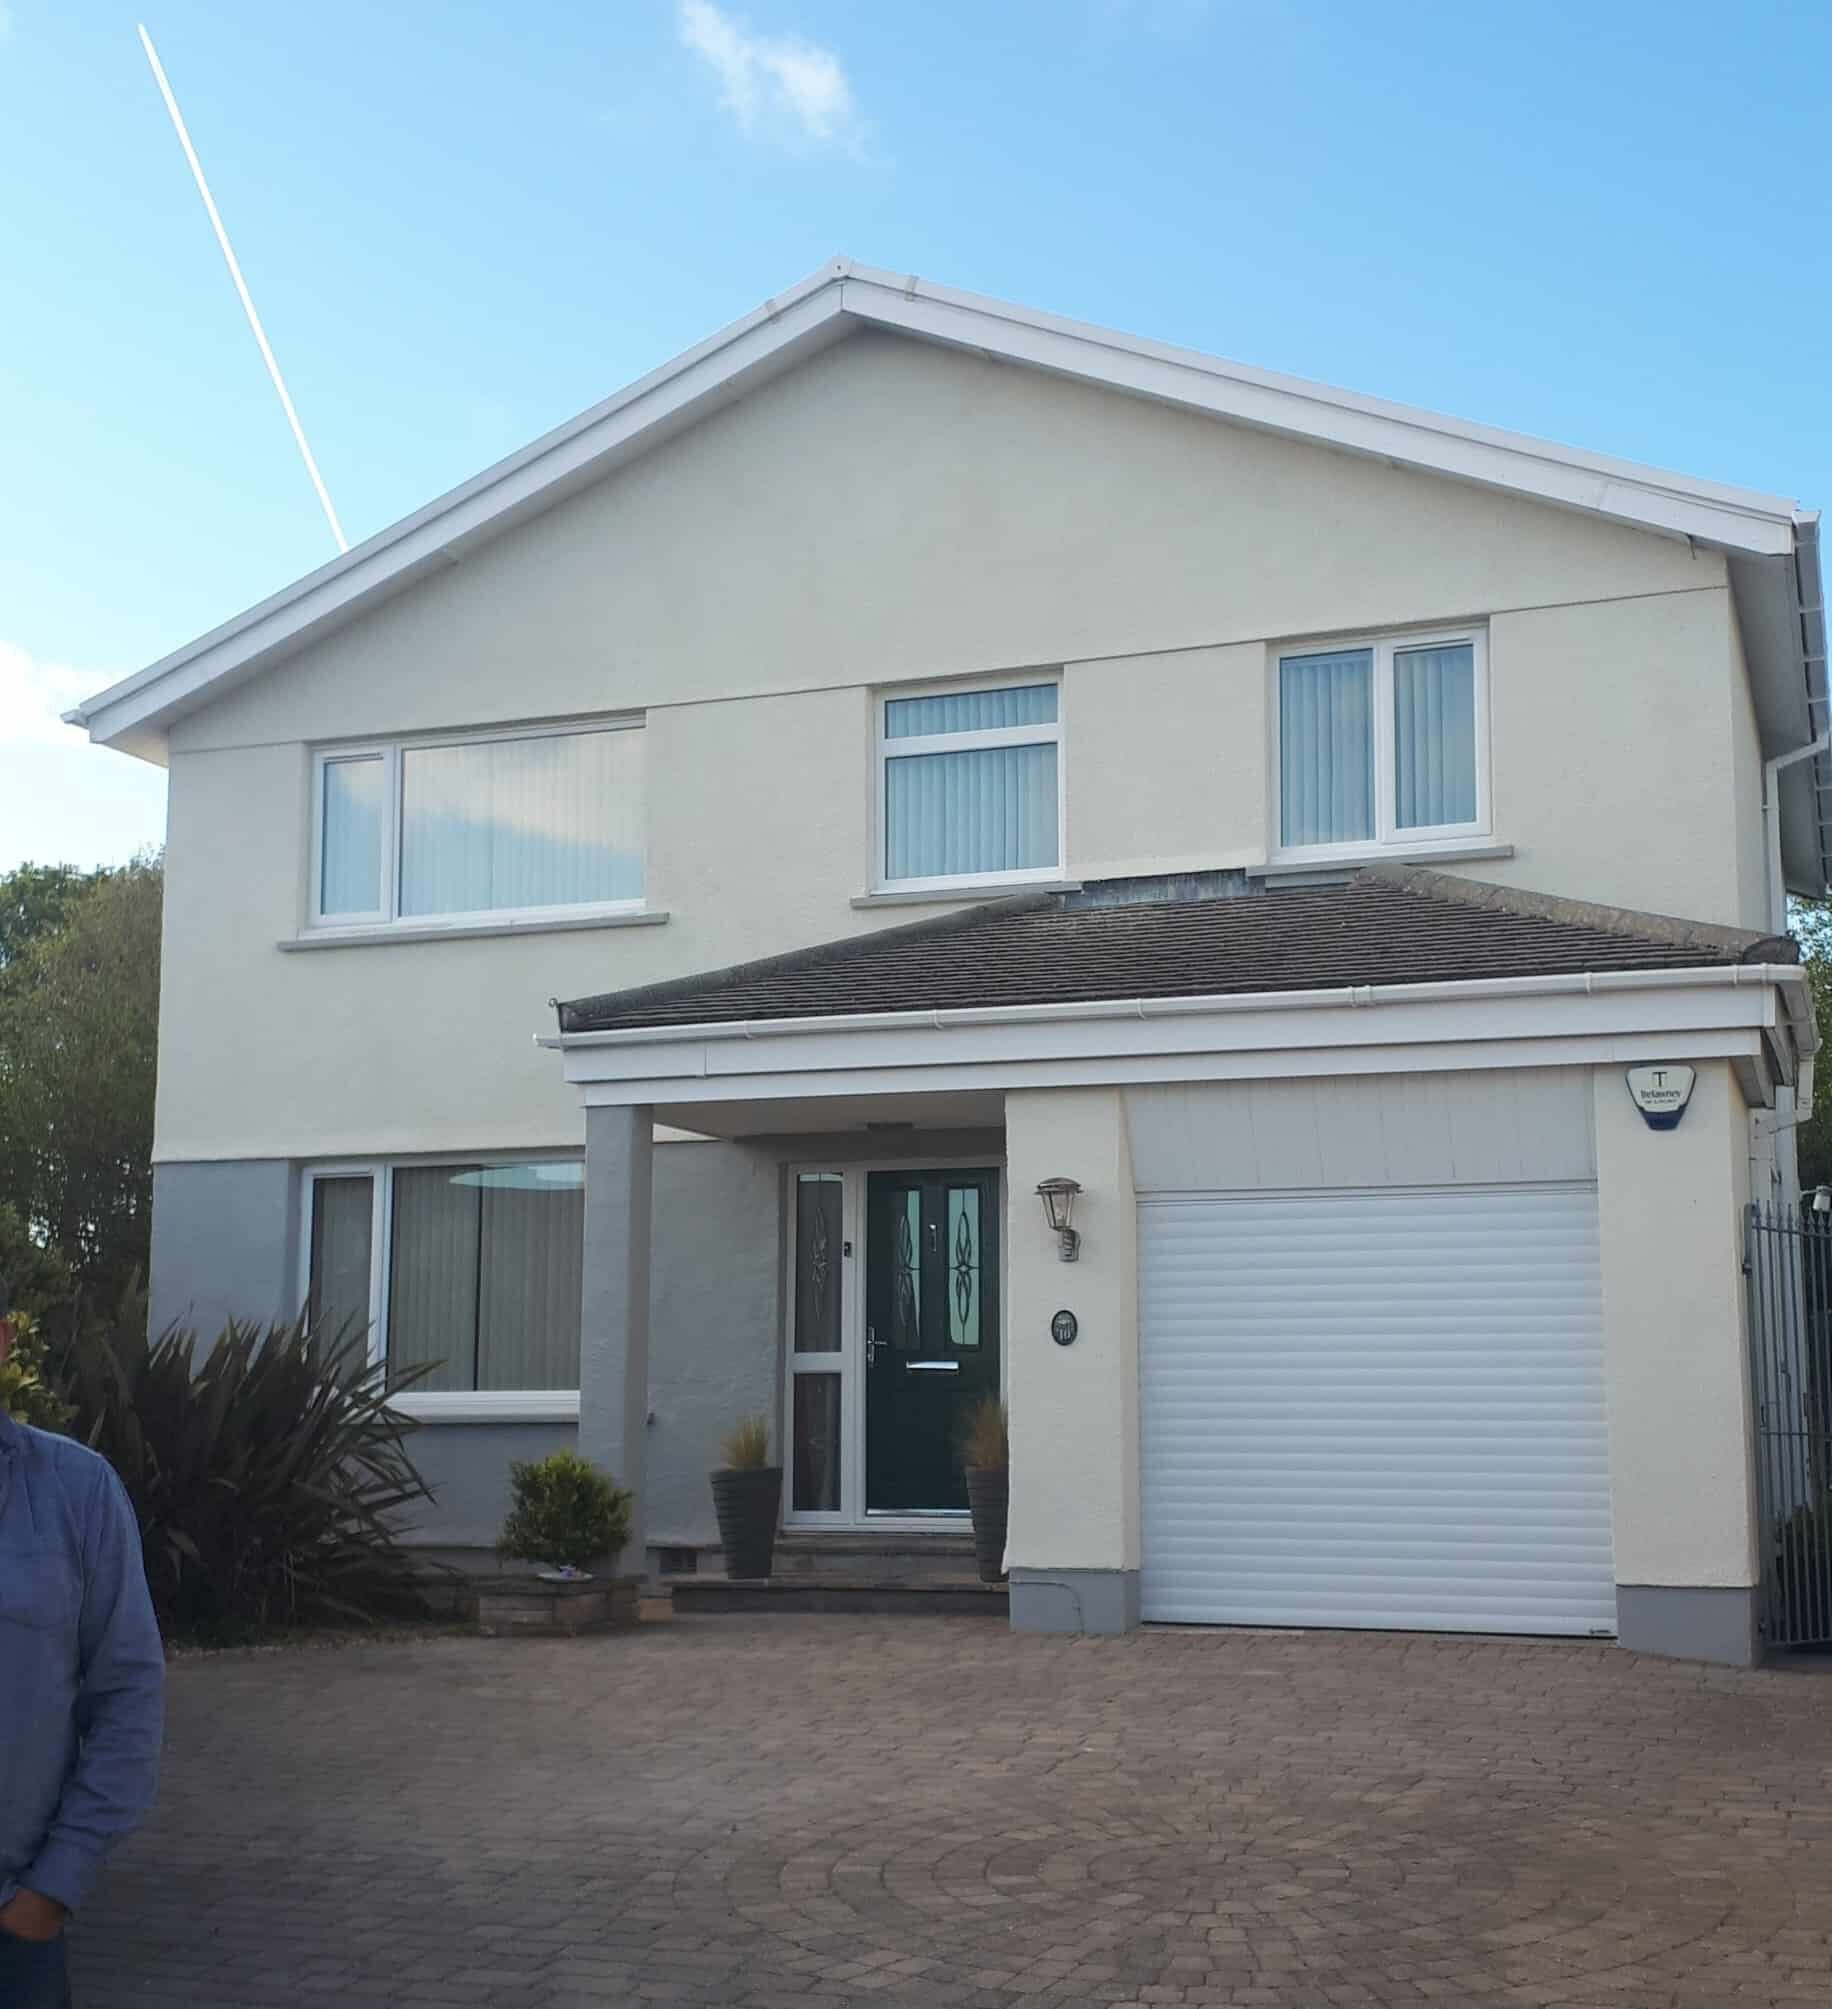 The front of the house in Cornwall with a wethertex exterior wall coating